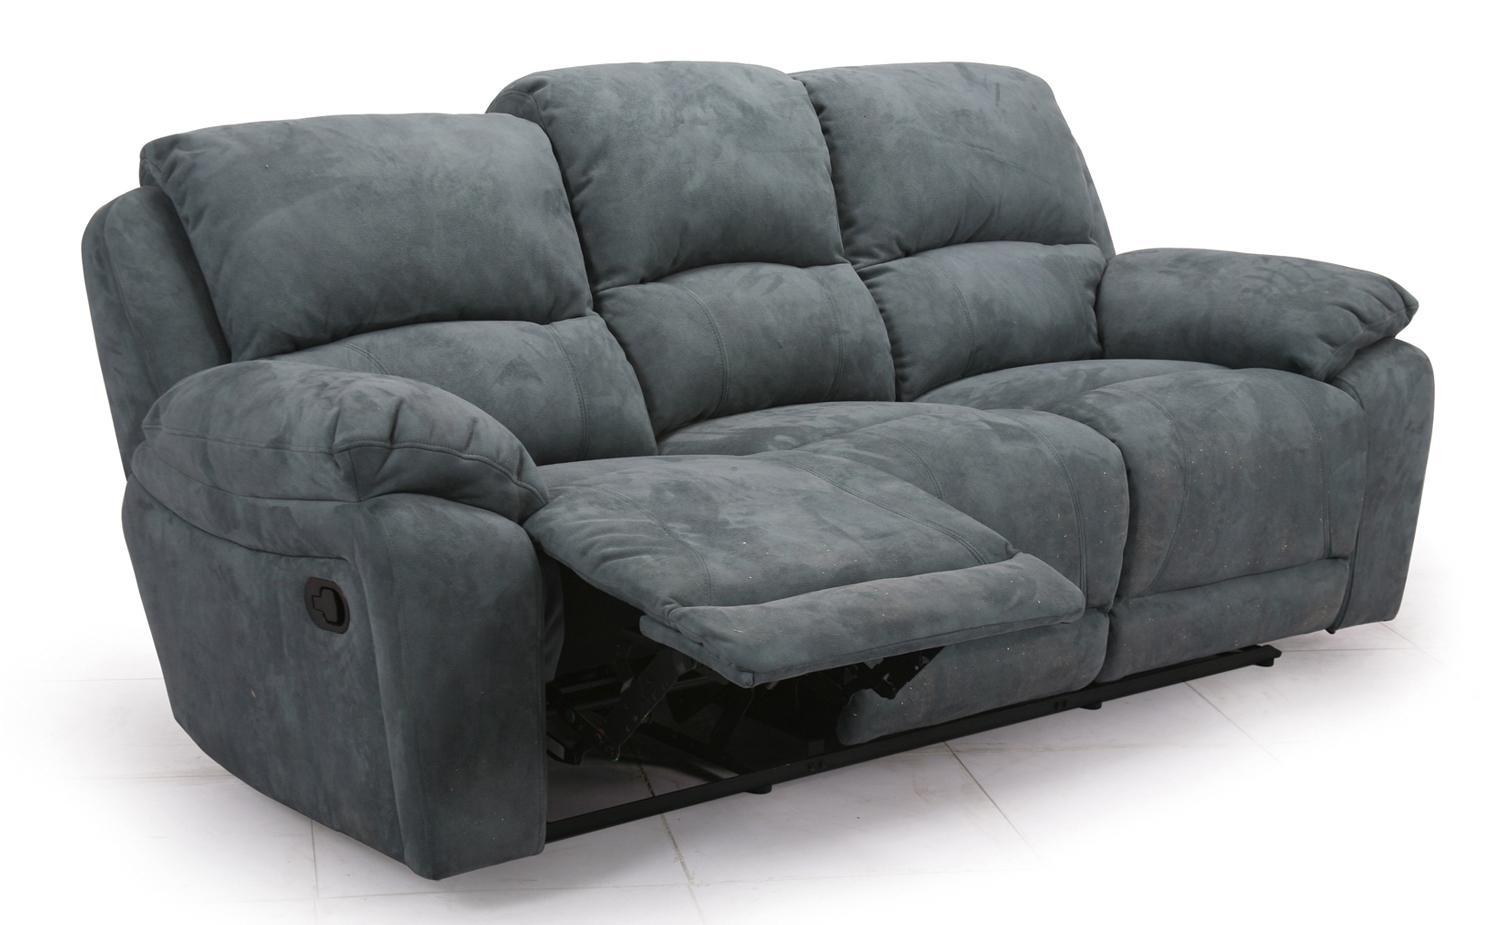 8532 Double Reclining Sofa by Cheers at Westrich Furniture & Appliances